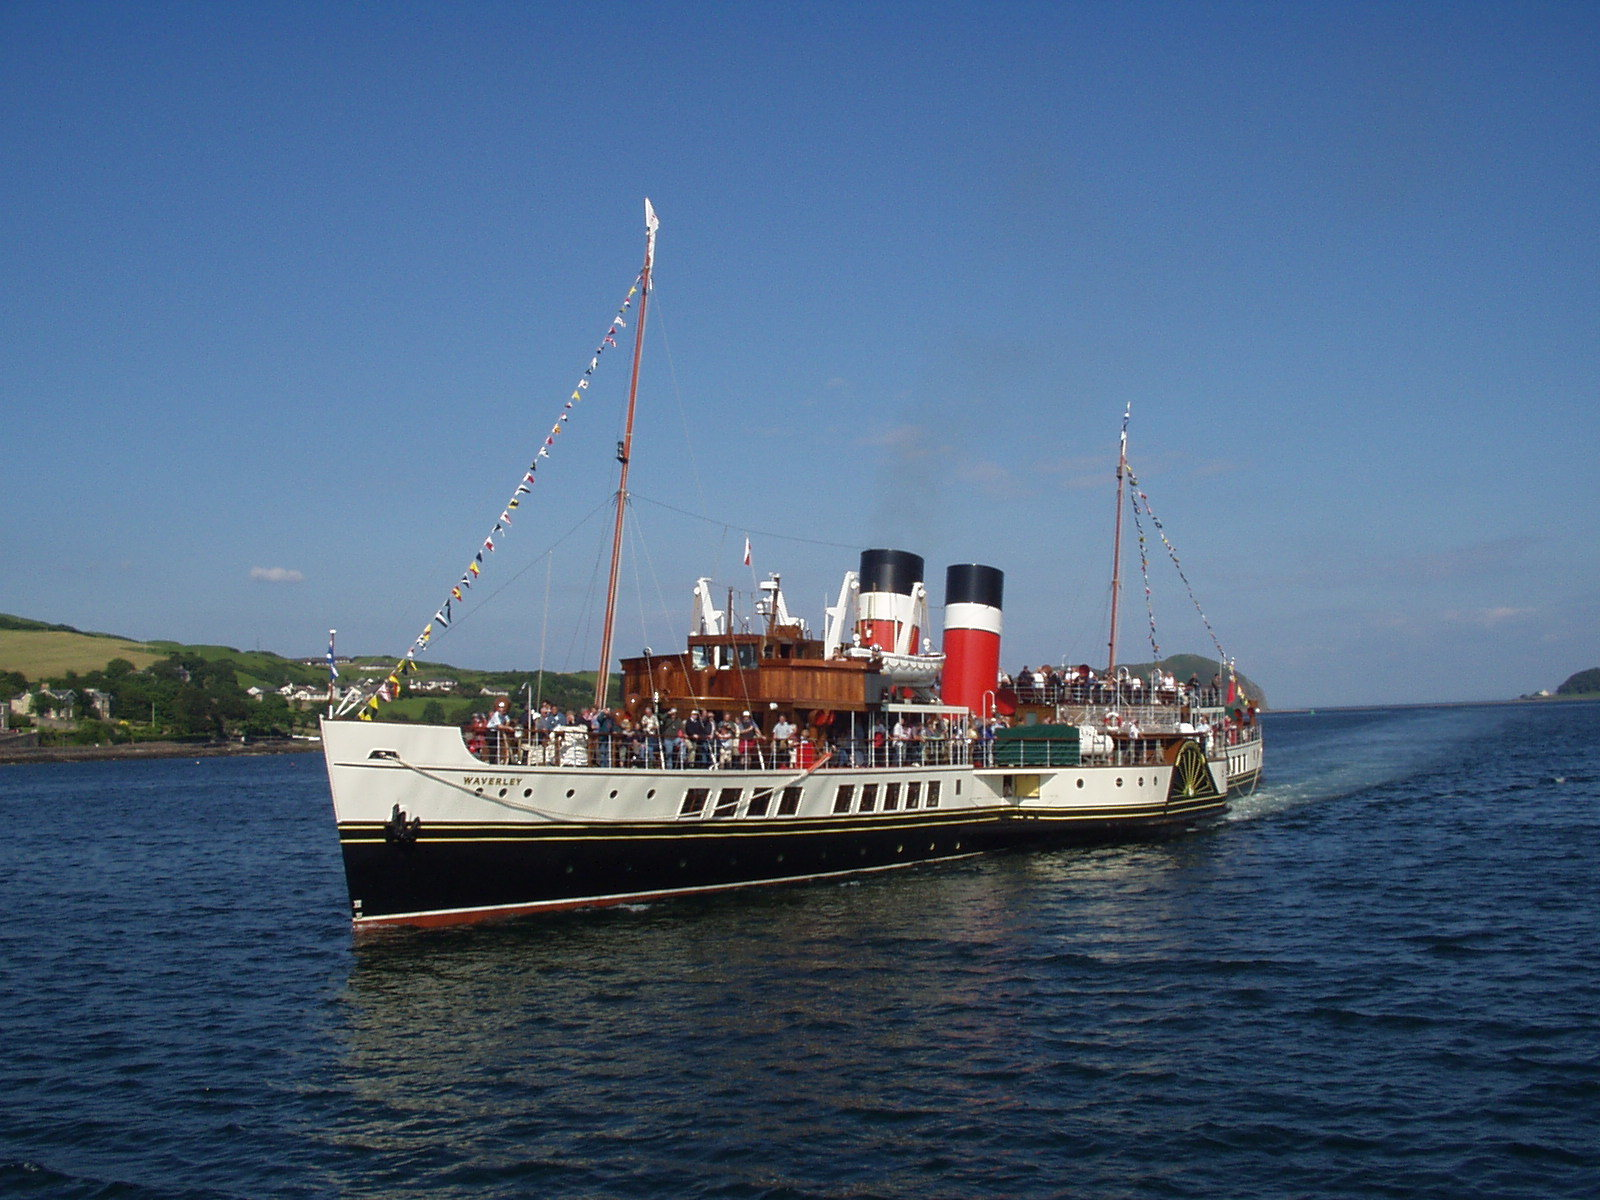 The Waverley will not call at Helensburgh on any of its spring Clyde cruises in late May